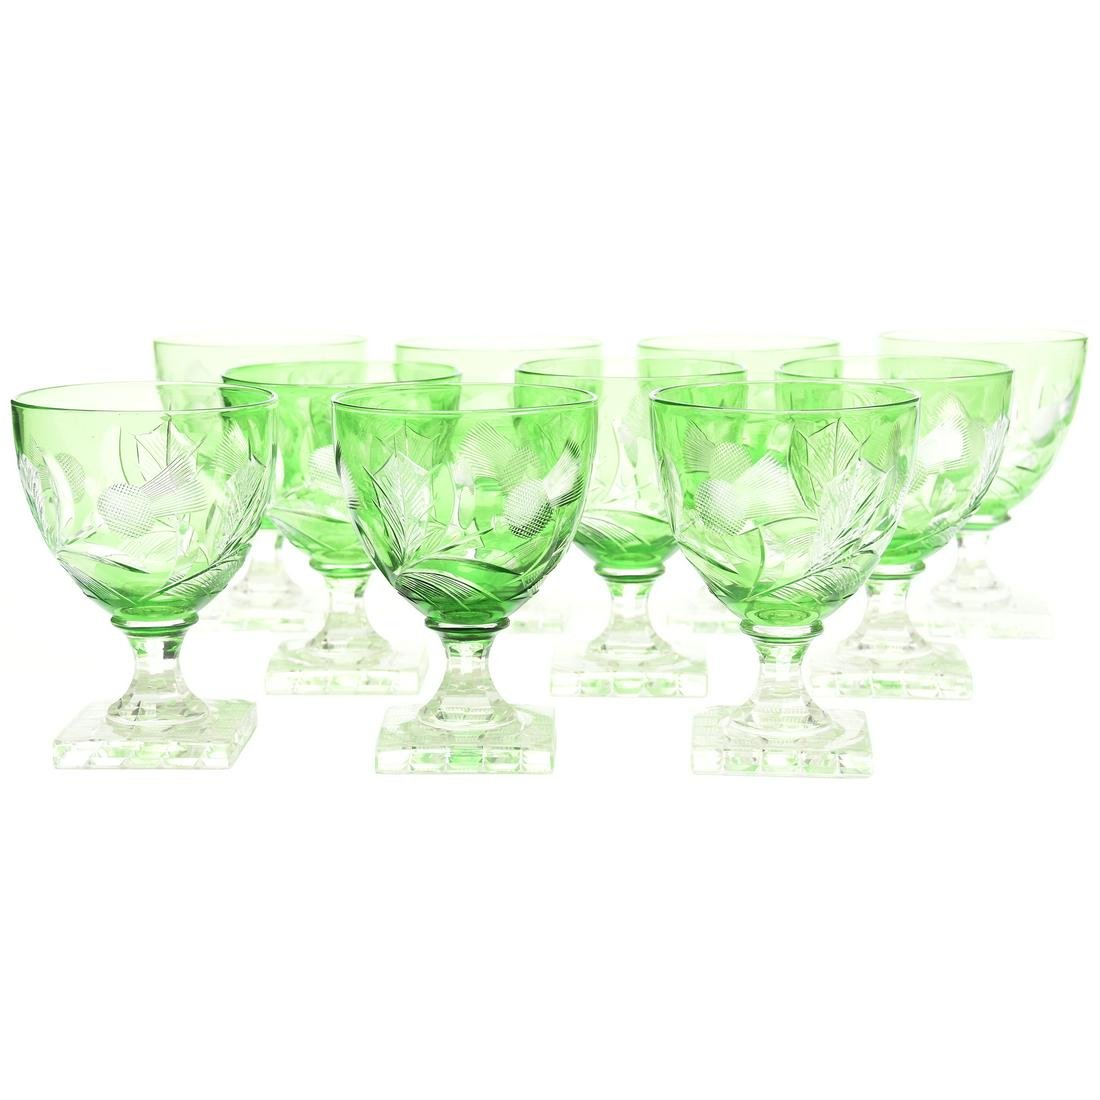 (10) Steuben #6338 Green Cut to Clear Wines